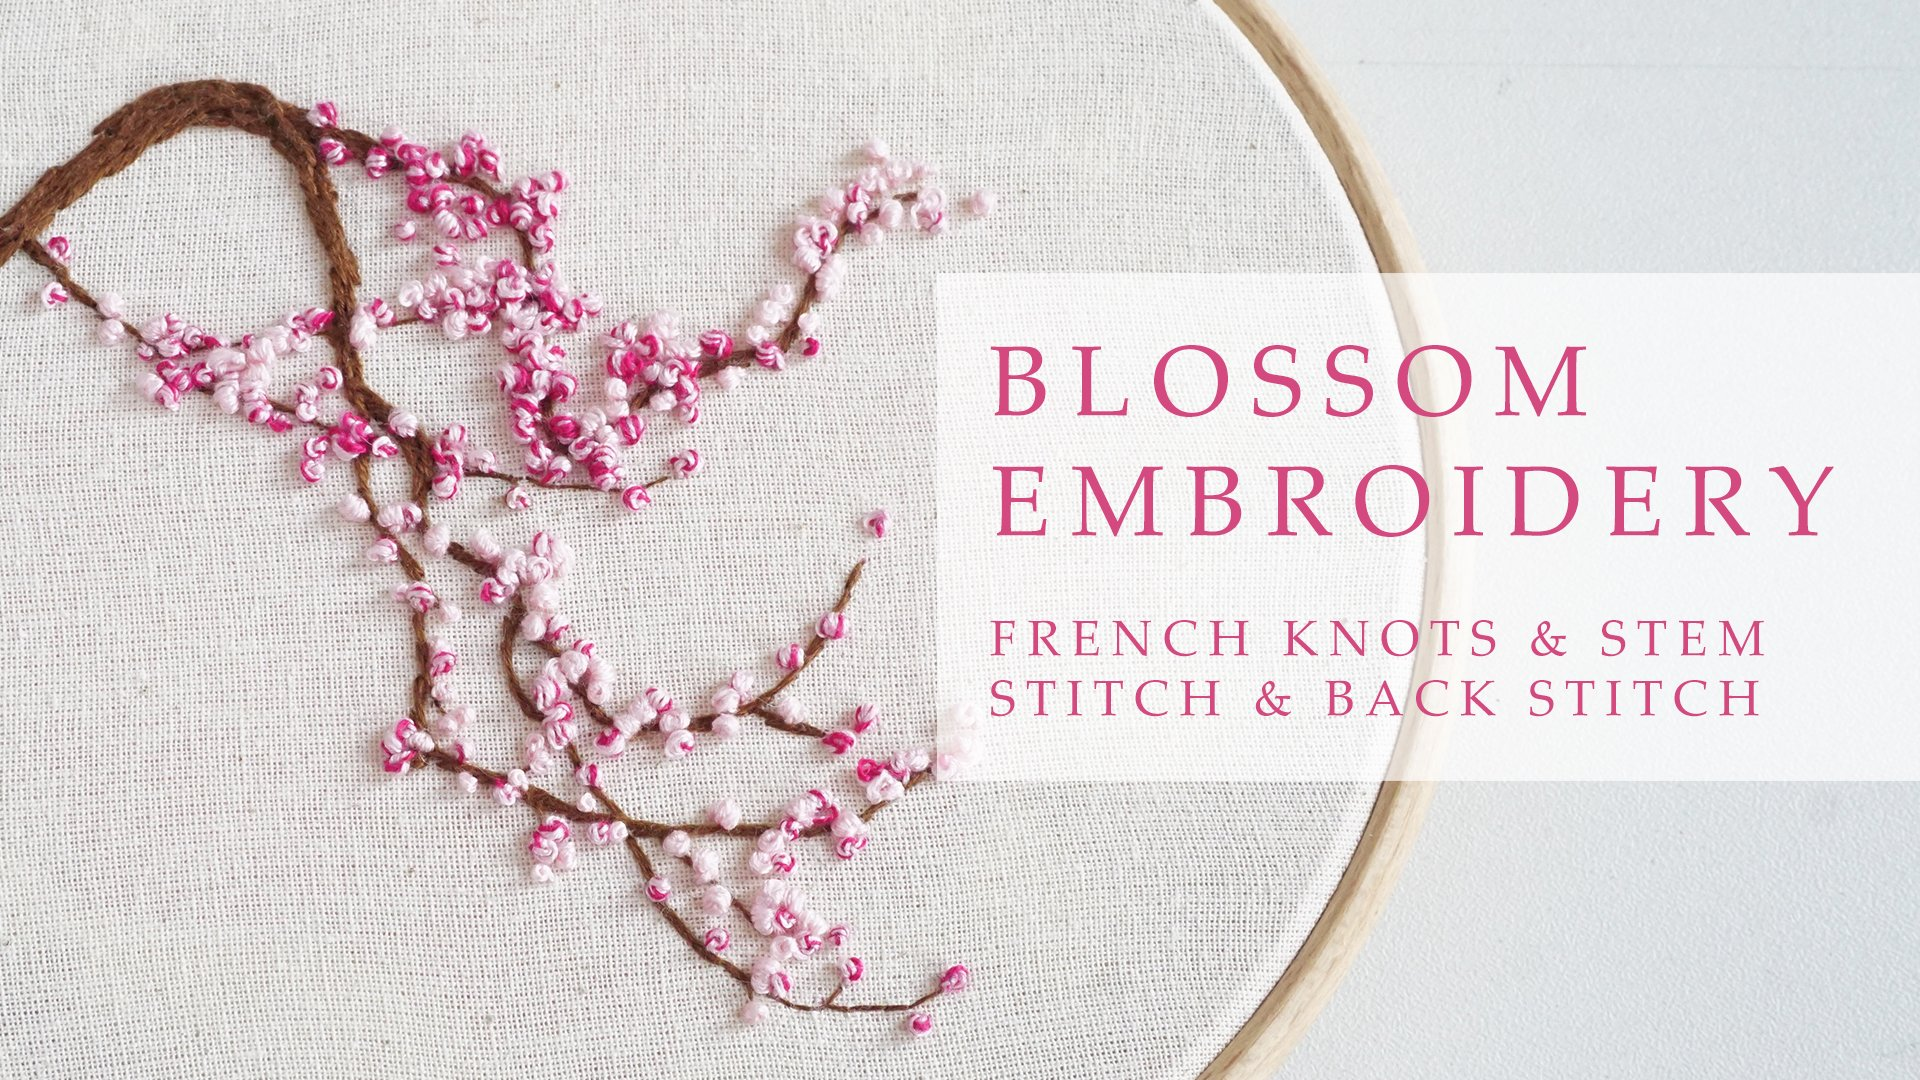 Blossom Embroidery Hoop Art: Using The Back stitch & Stem Stitch